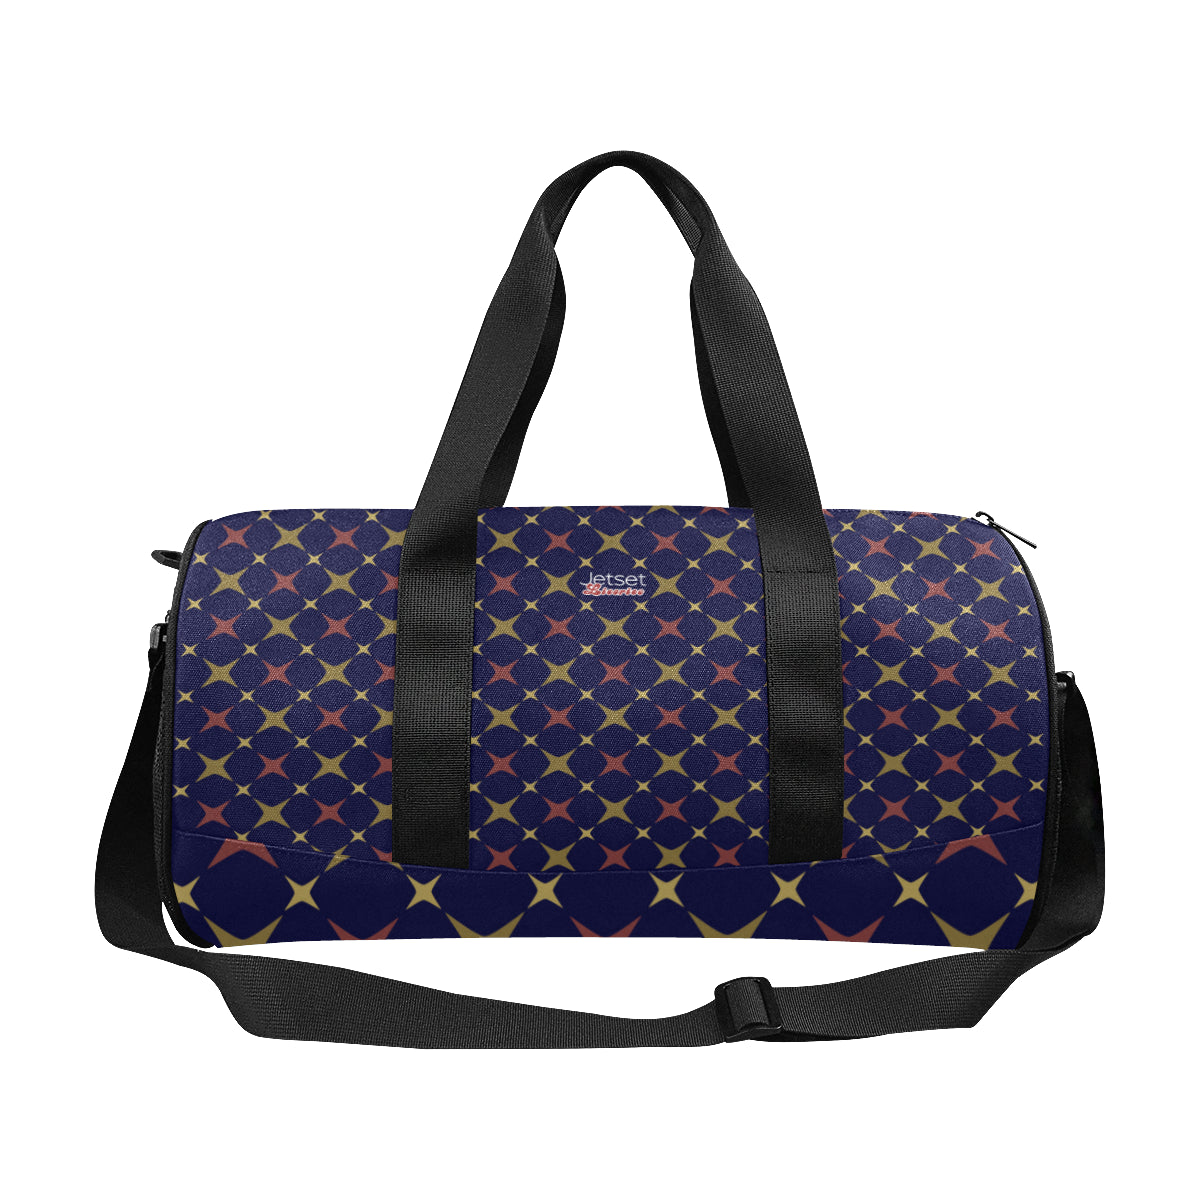 Jetset Licorice Designer Collection duffle bag (red-blue) - Resort Pop